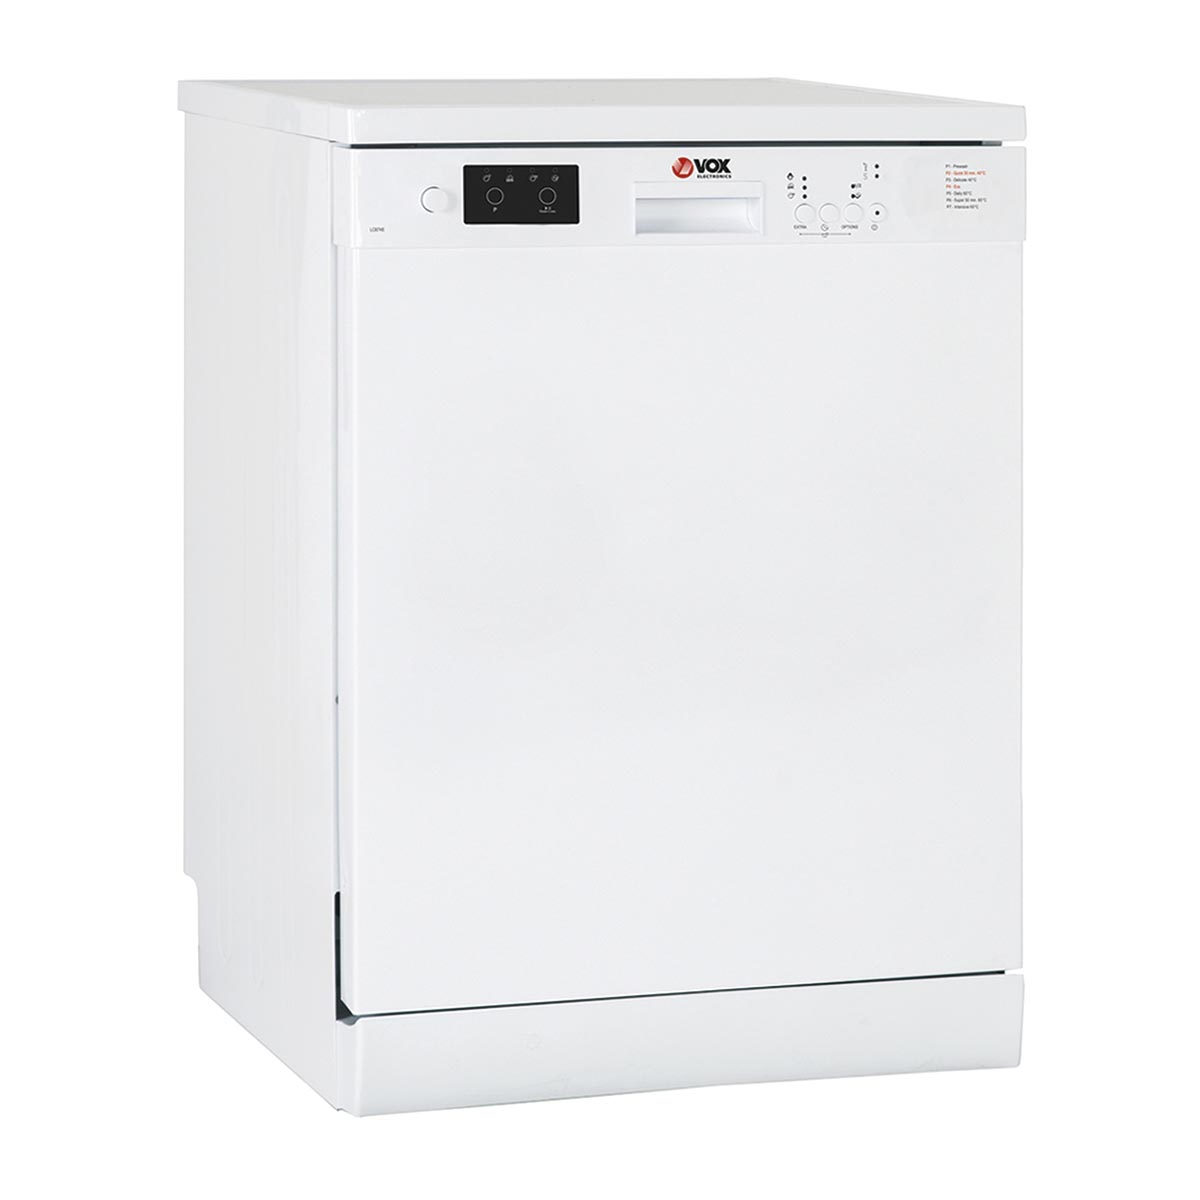 Dishwasher LC 6745